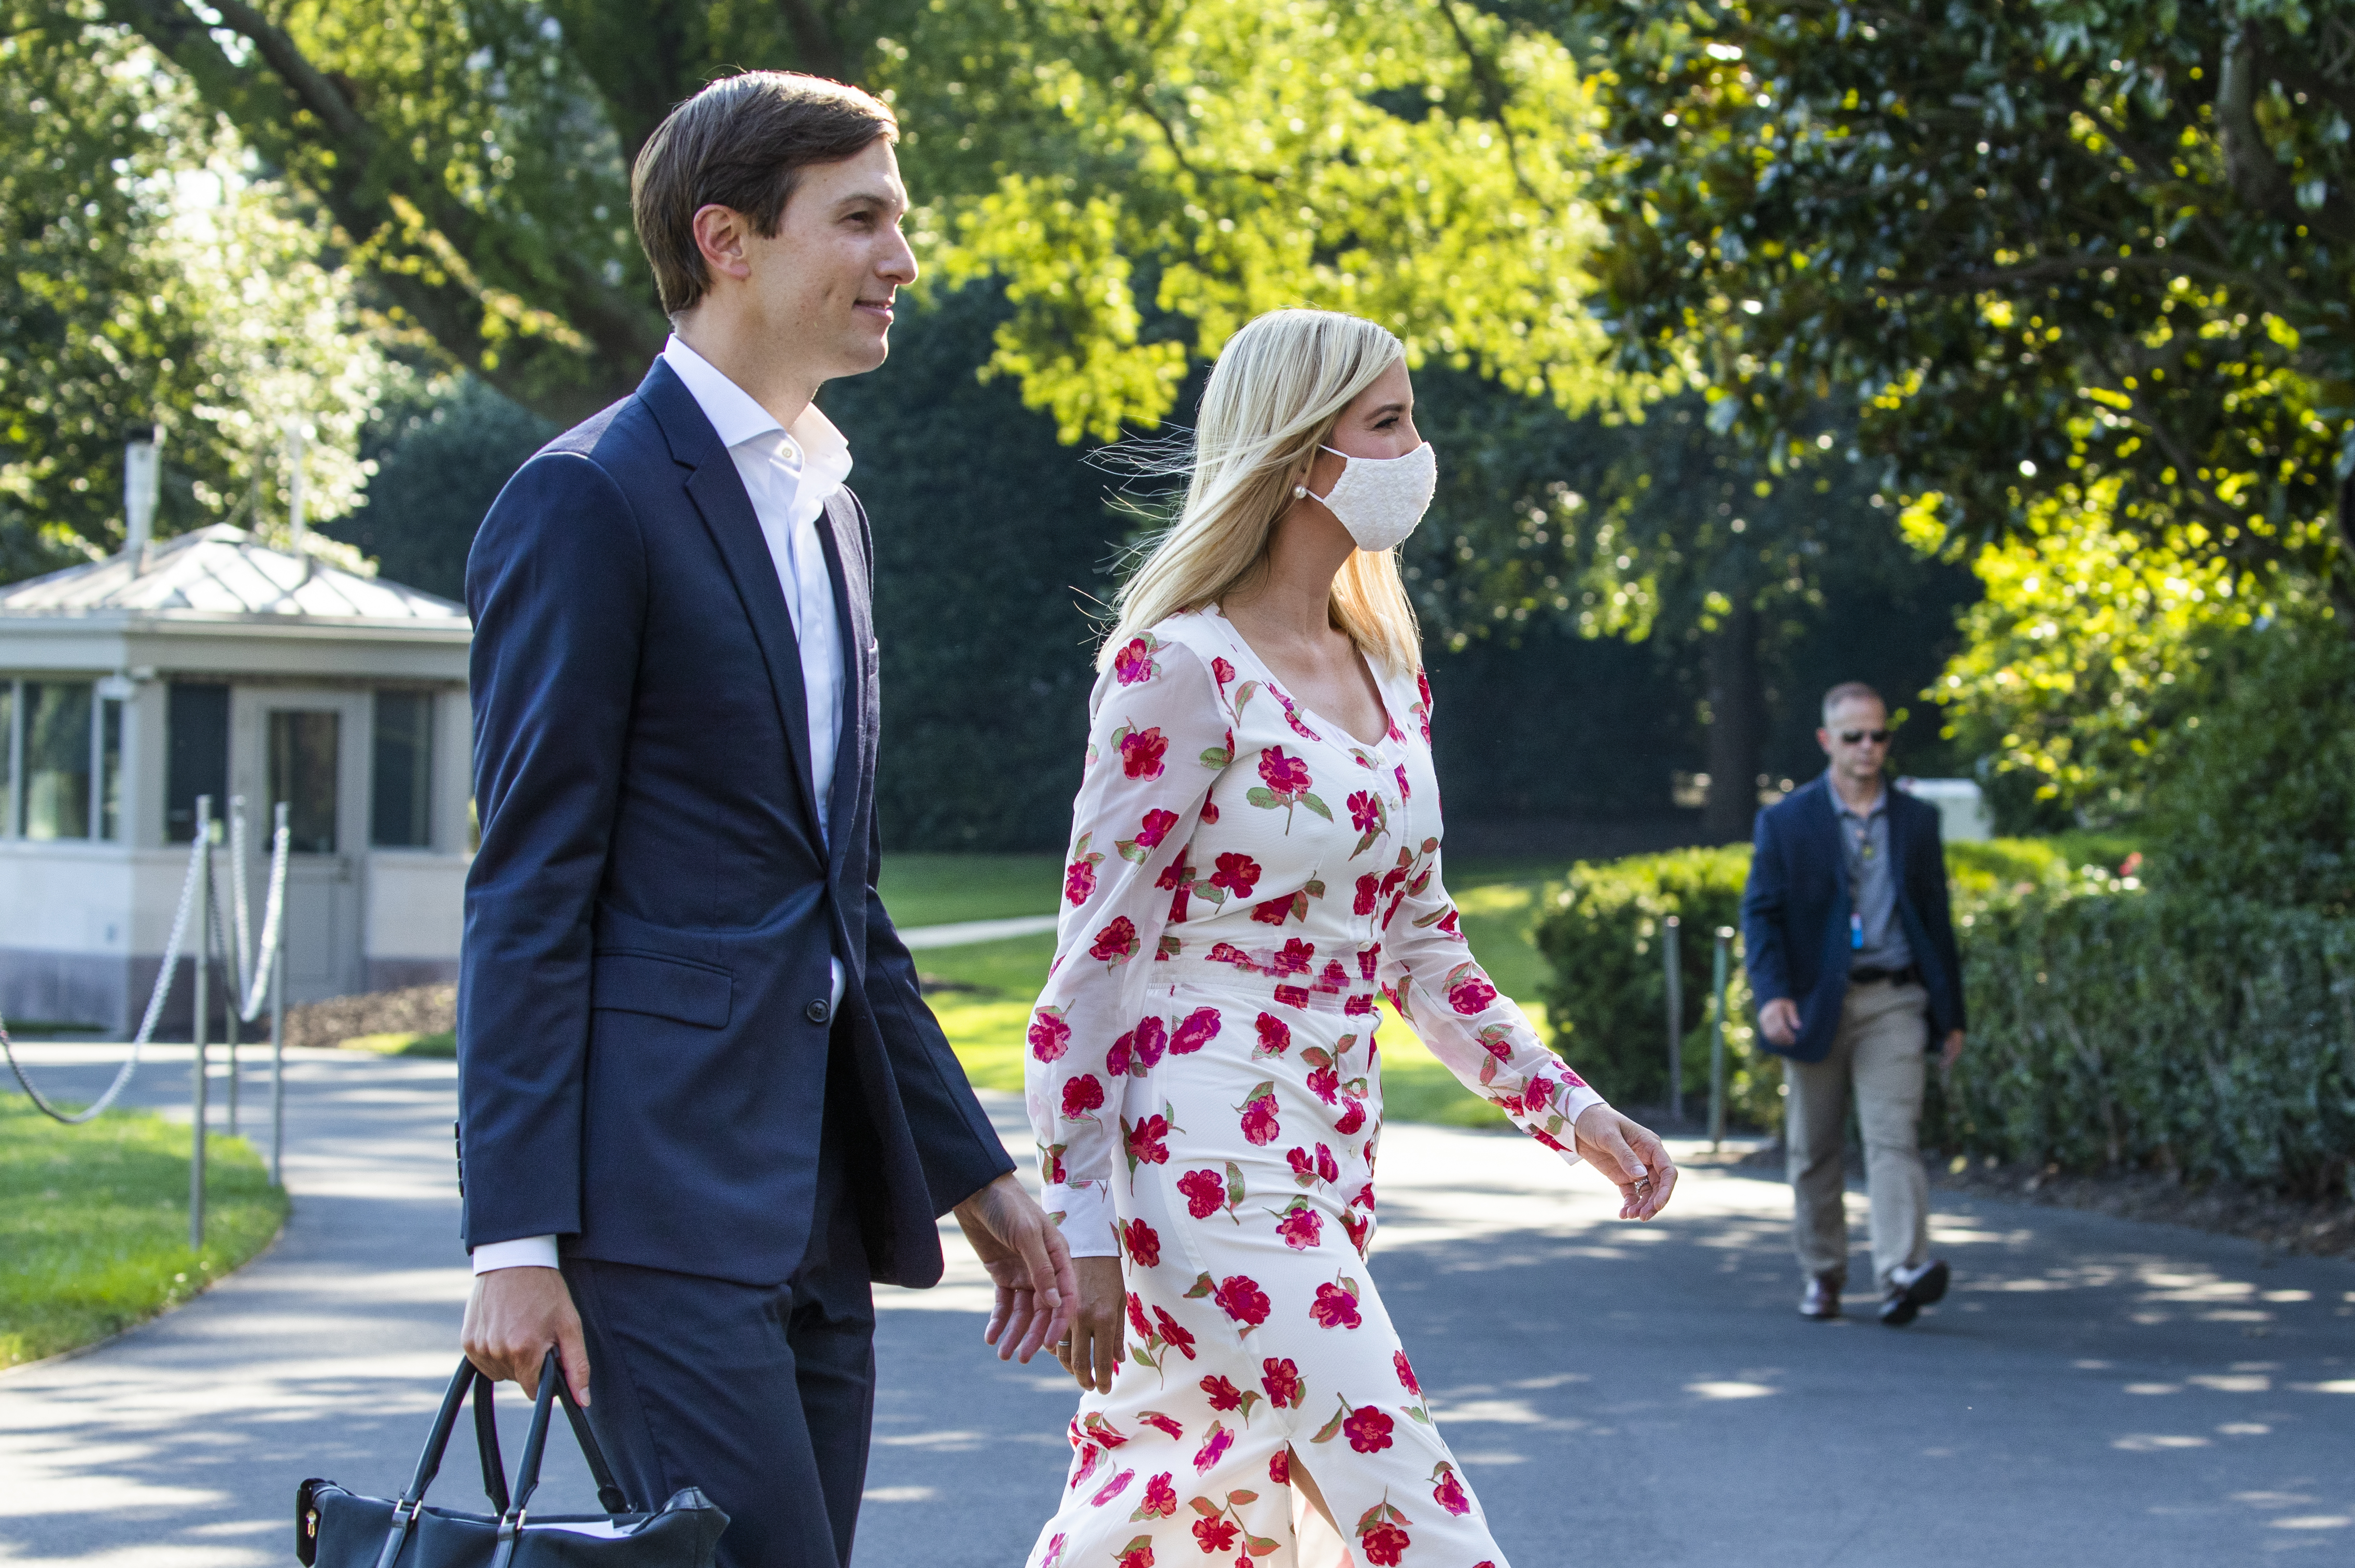 Ivanka Trump And Jared Kushner Earned At Least 36 Million In Outside Income Last Year New Disclosures Show The Boston Globe